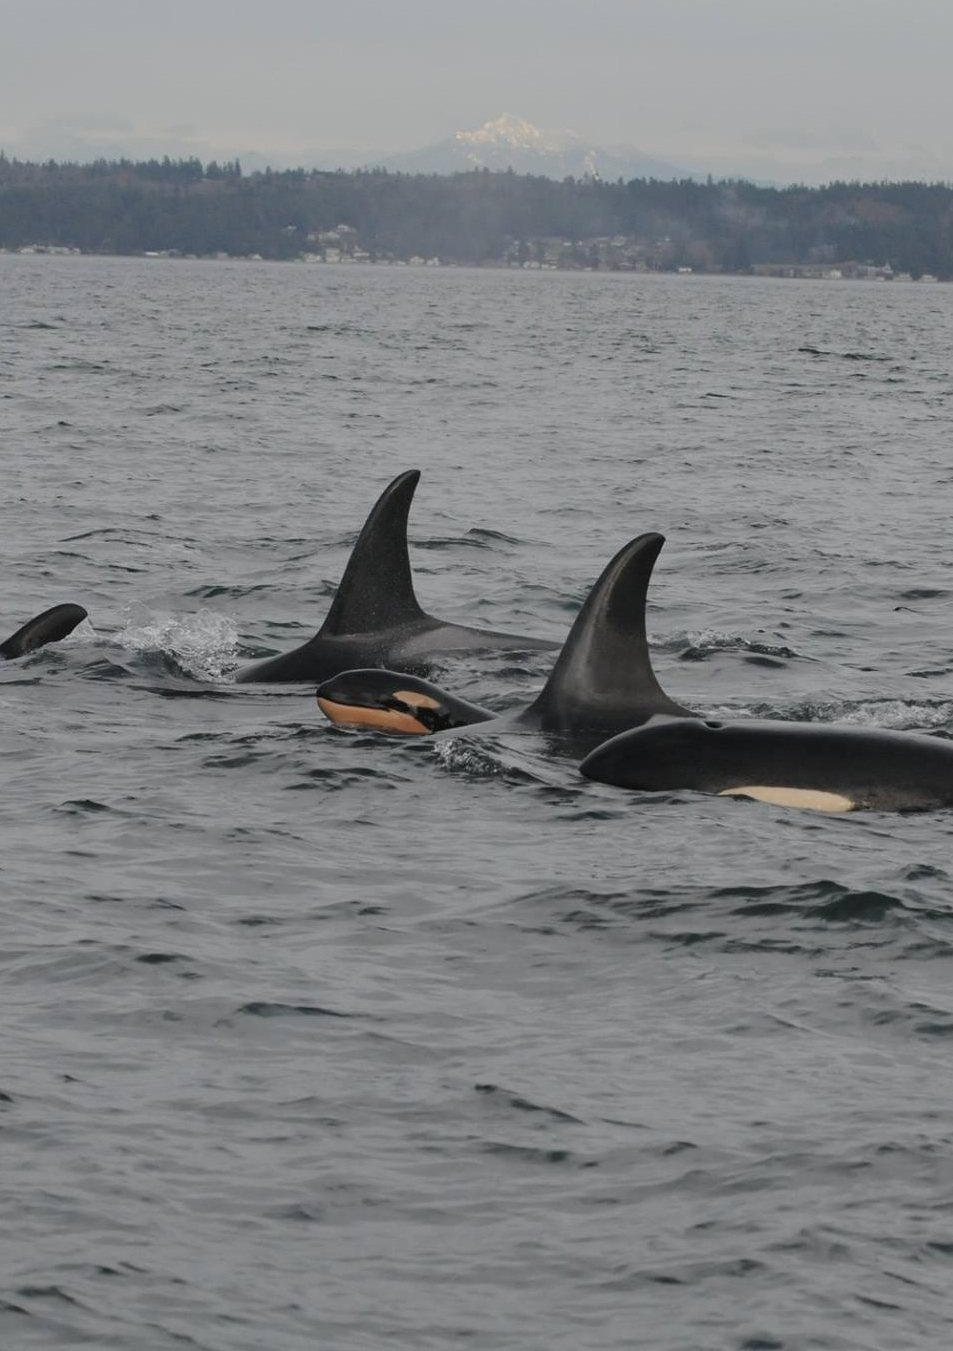 New calf J-55 with adult females J-14 and J-37. Photo: NOAA Fisheries